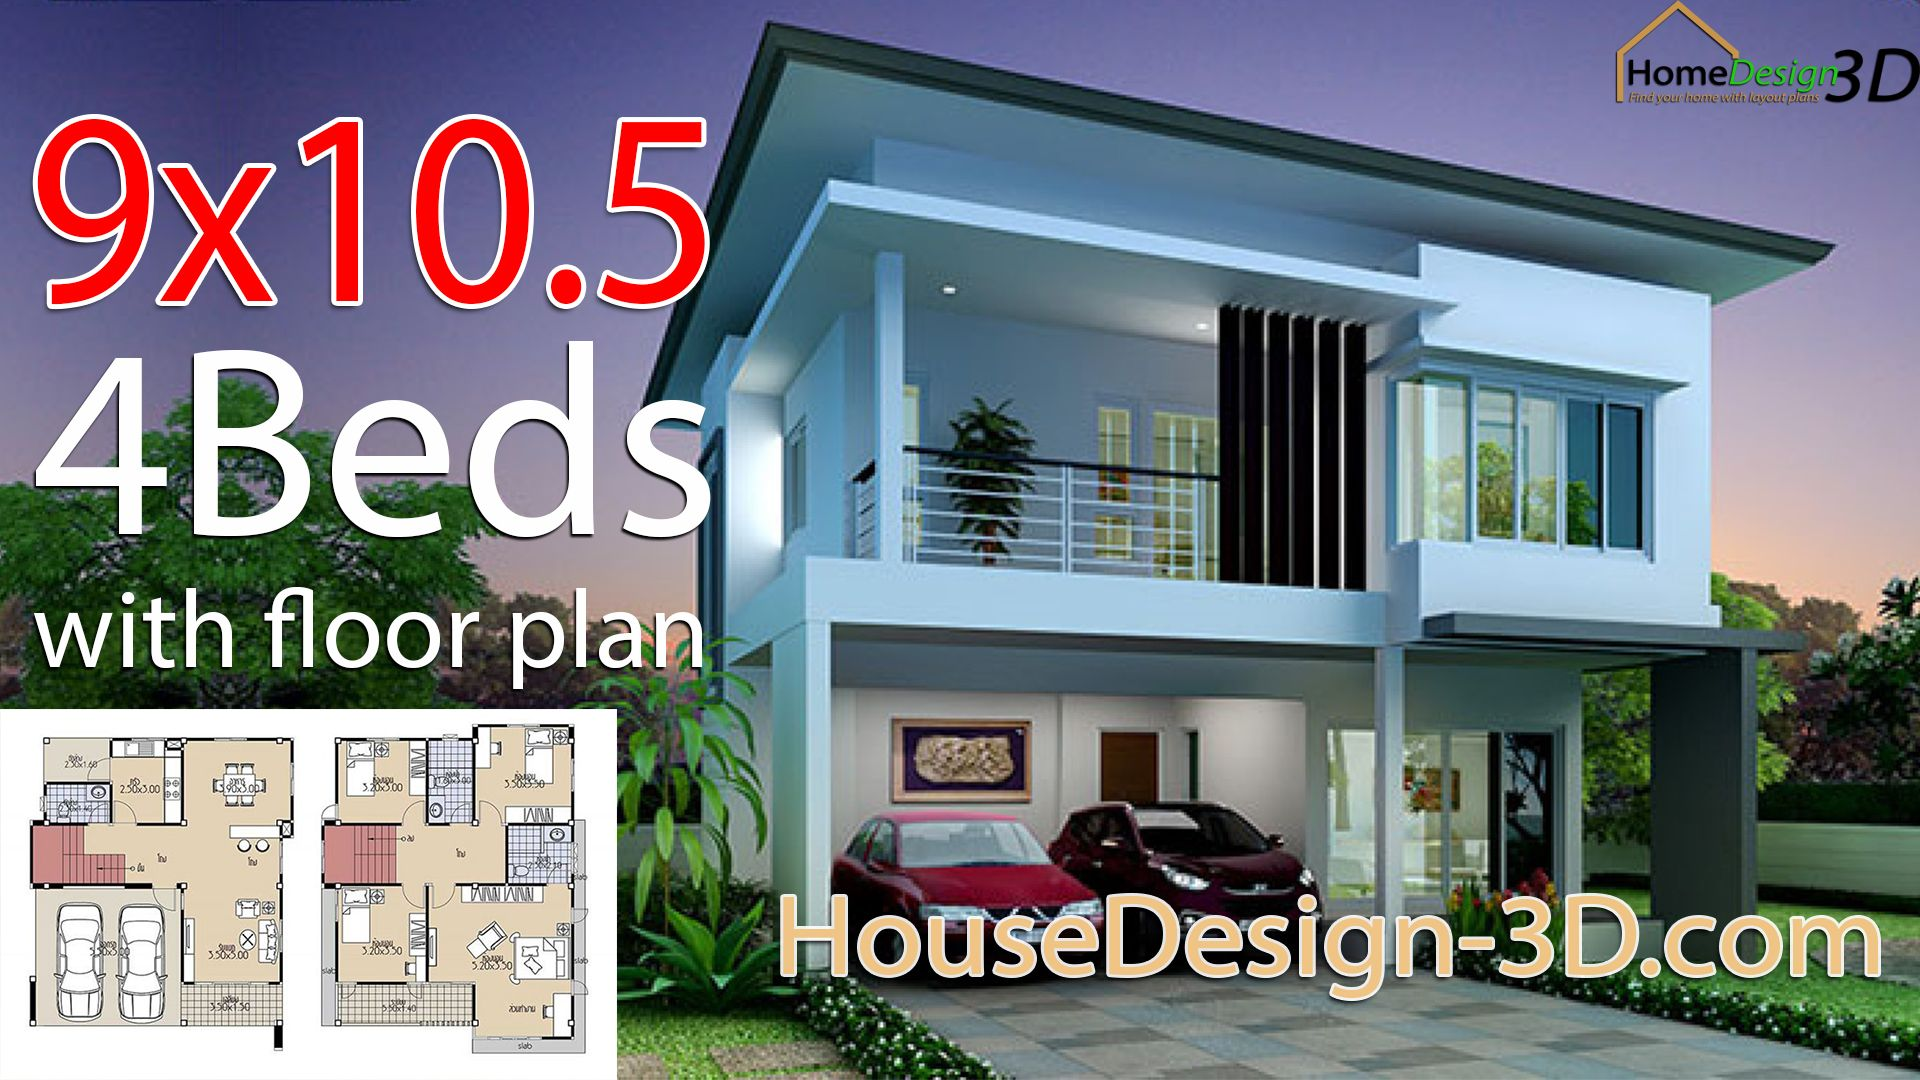 House Design 3d 9x10 5 With 4 Bedrooms In 2020 House Design Tiny House Design House Styles